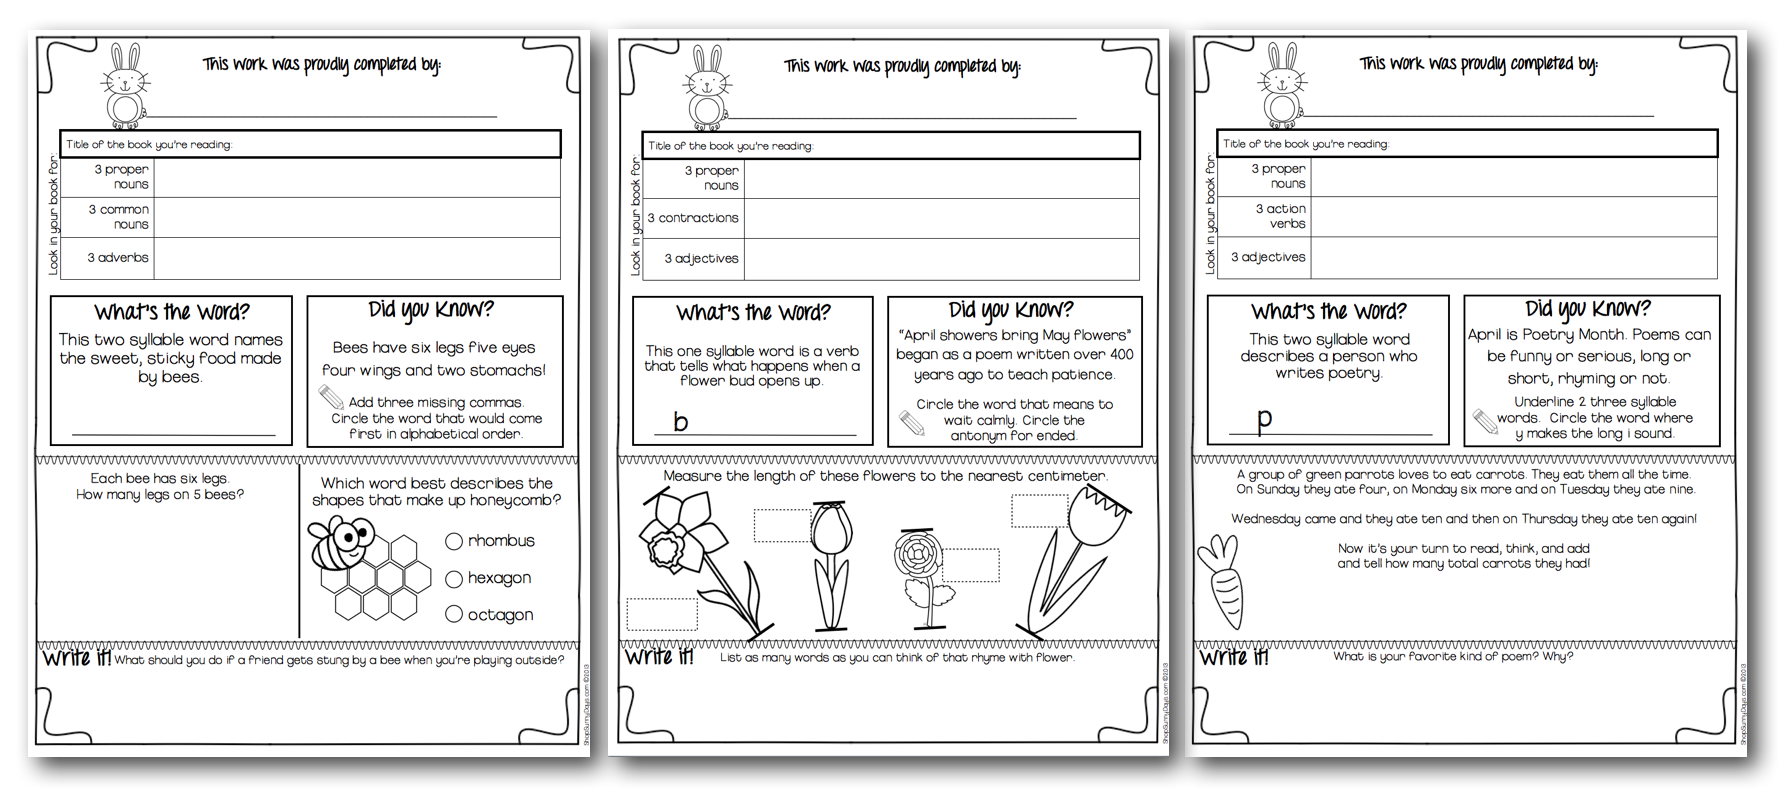 Homework activities for kids